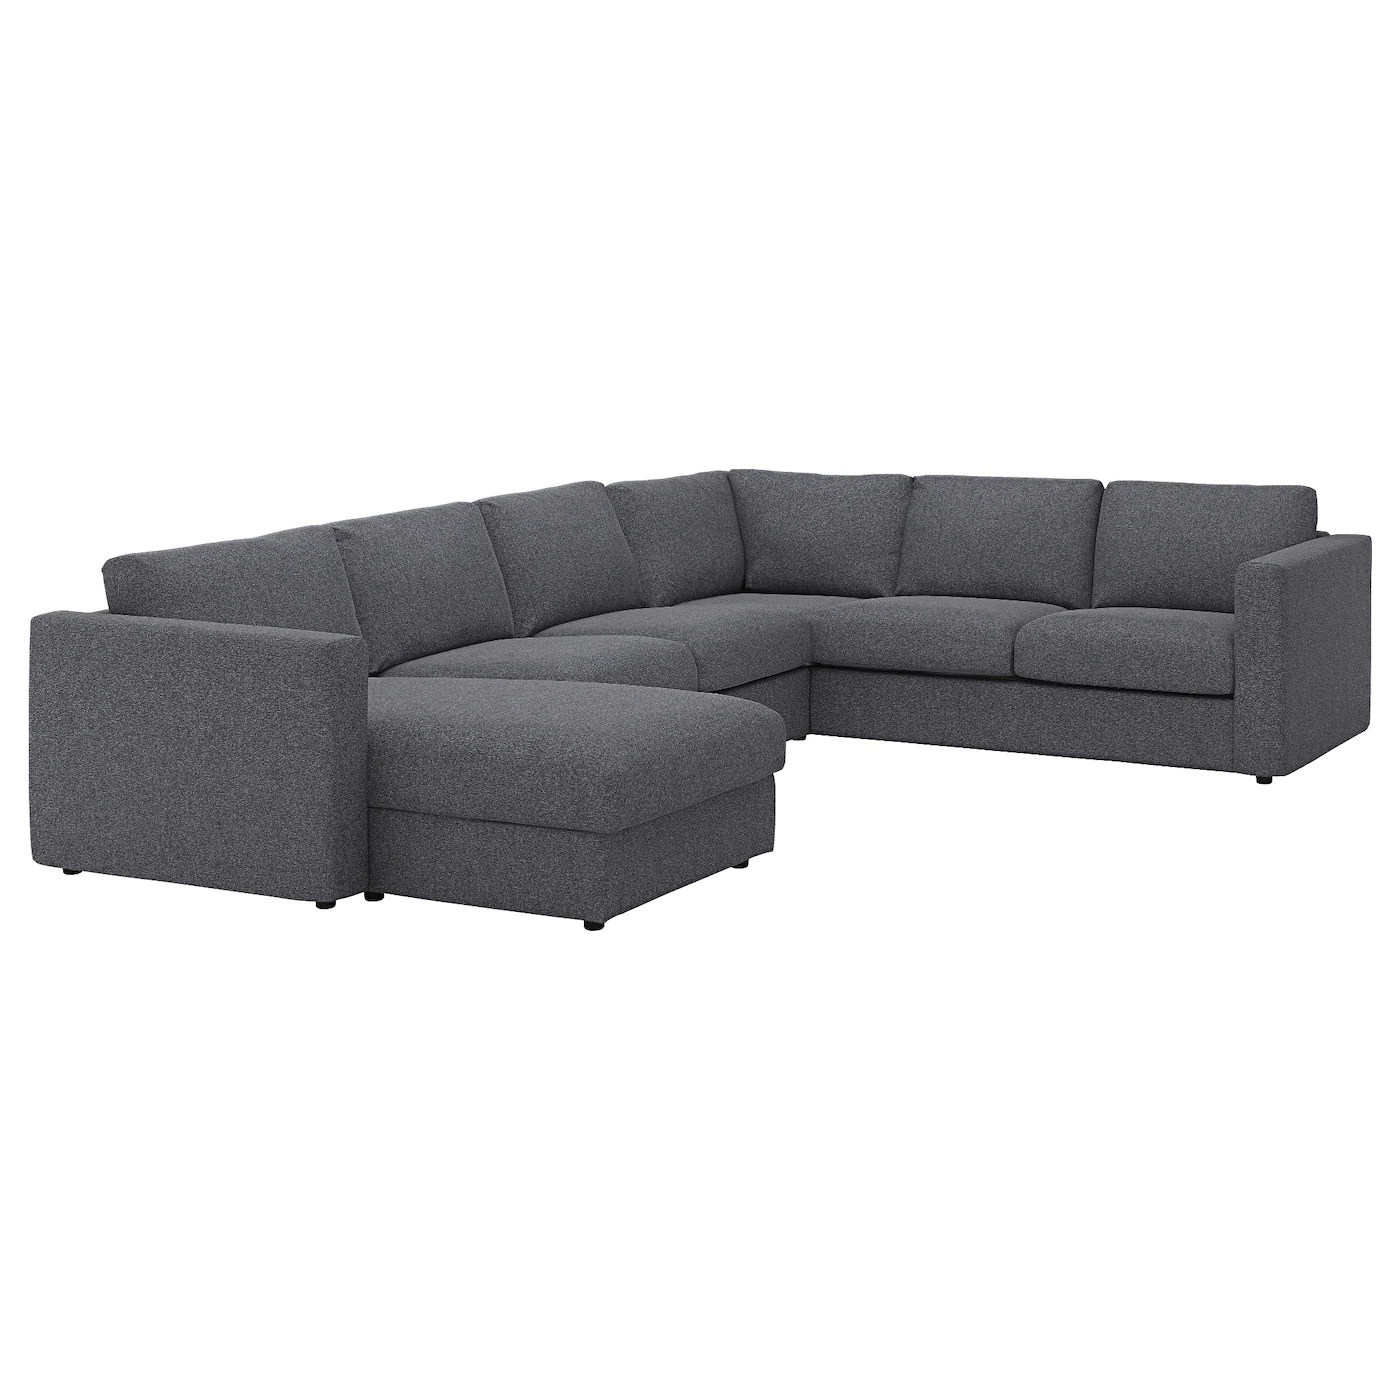 La Chaise Longue Catalogue Vimle Corner Sofa 5 Seat With Chaise Longue Gunnared Medium Grey